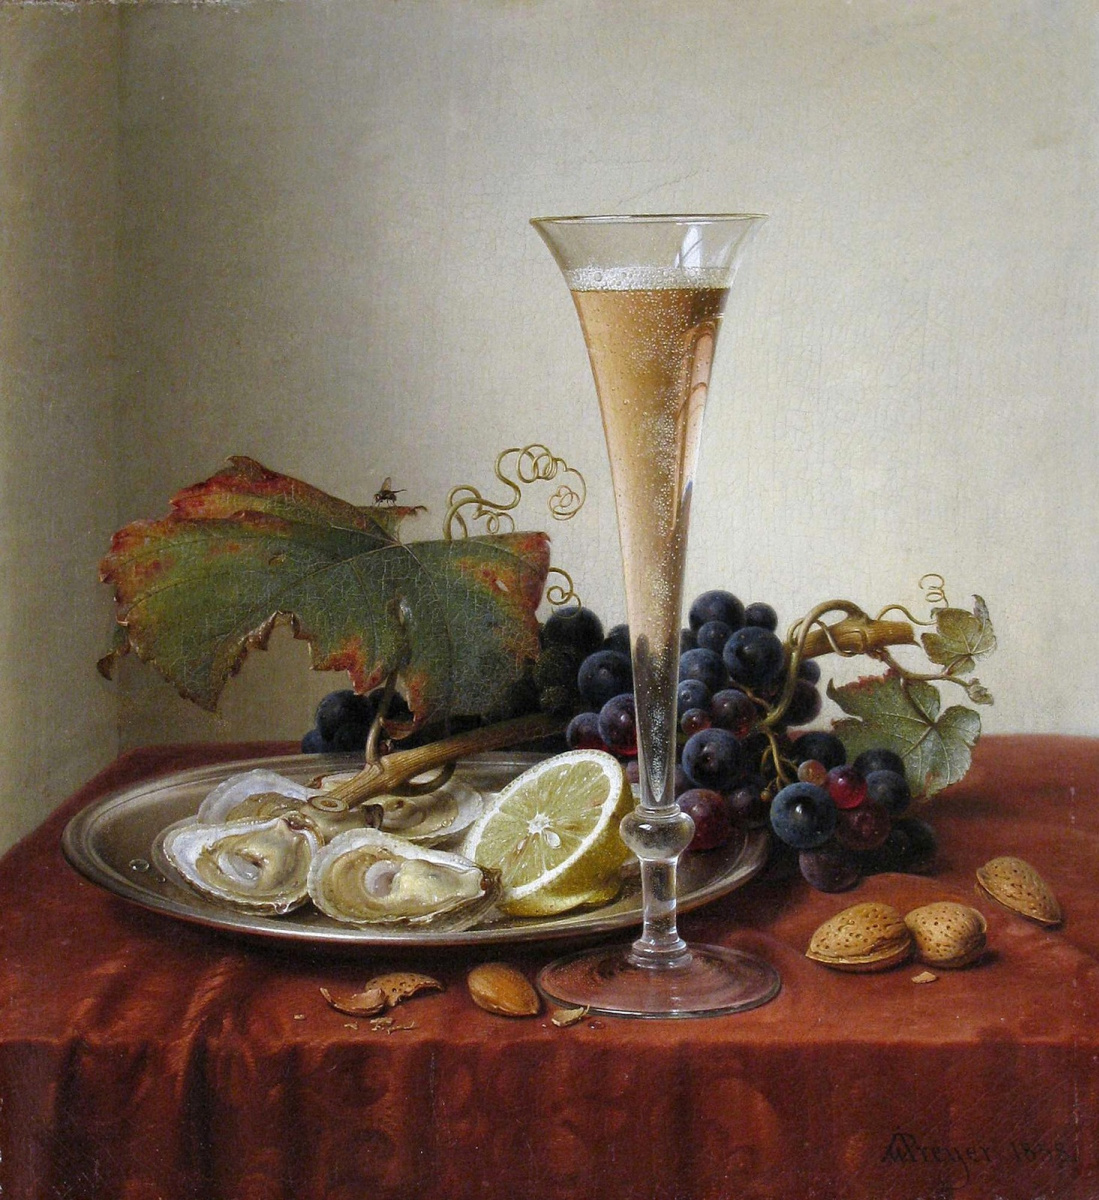 Johann Wilhelm Preyer. Grapes, oysters, almonds, and a glass of champagne on a draped ledge. 1858